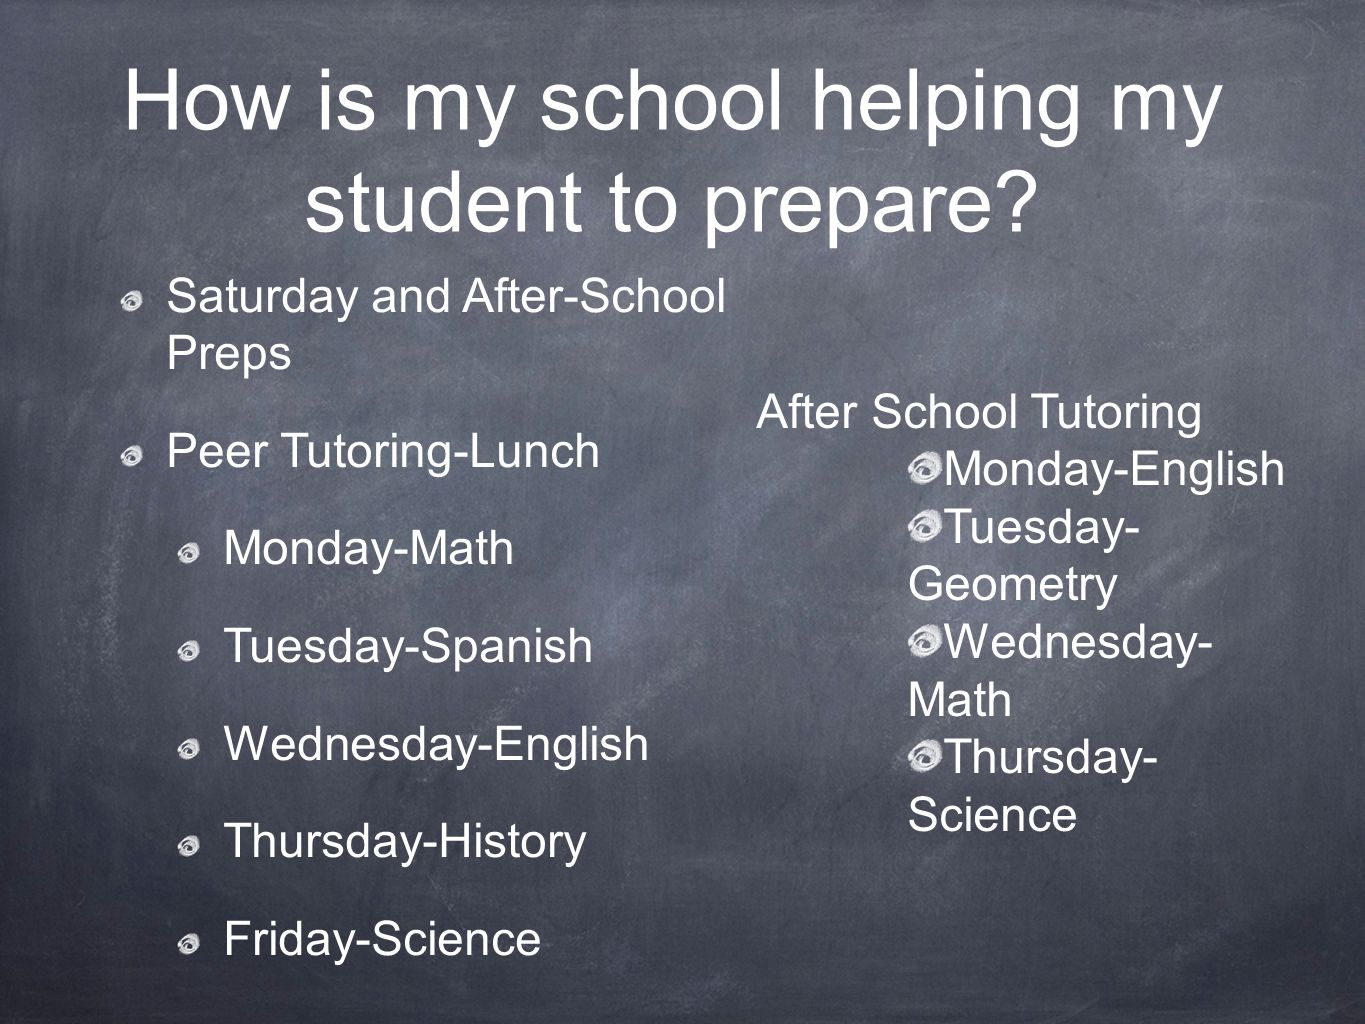 How is my school helping my student to prepare? Saturday and After-School Preps Peer Tutoring-Lunch Monday-Math Tuesday-Spanish Wednesday-English Thur